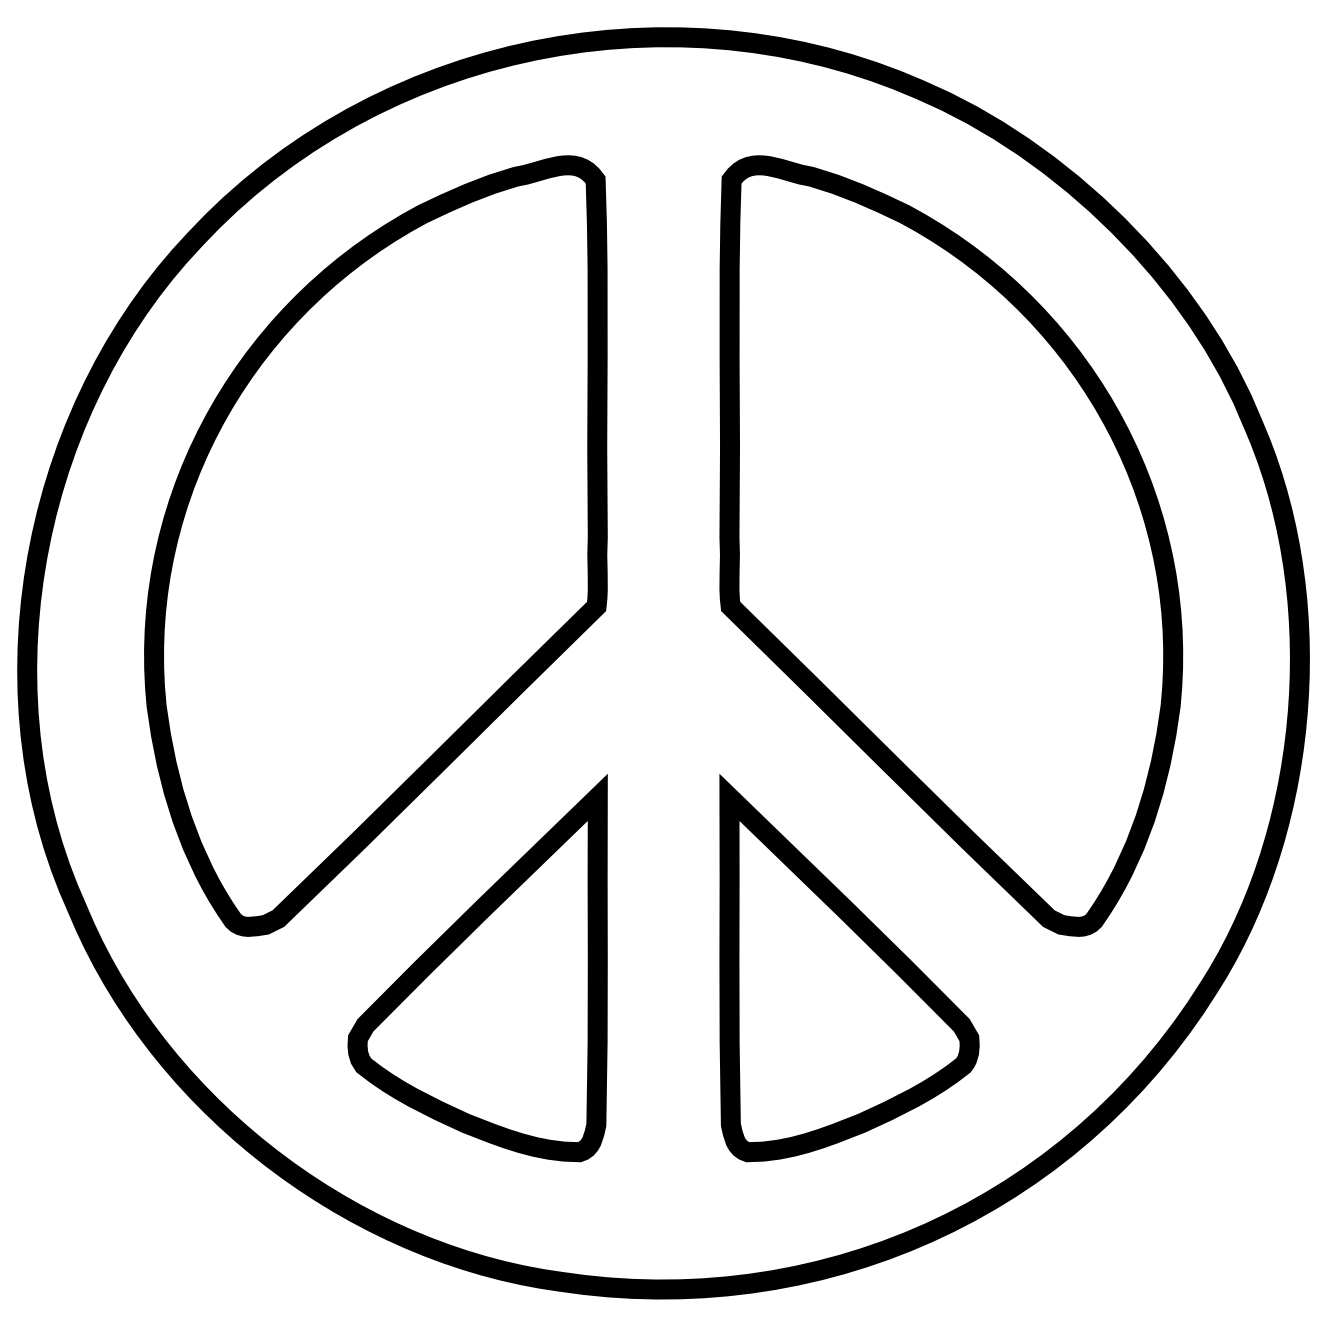 Drawn peace sign hand clipart Peace Peace Clip images Sign